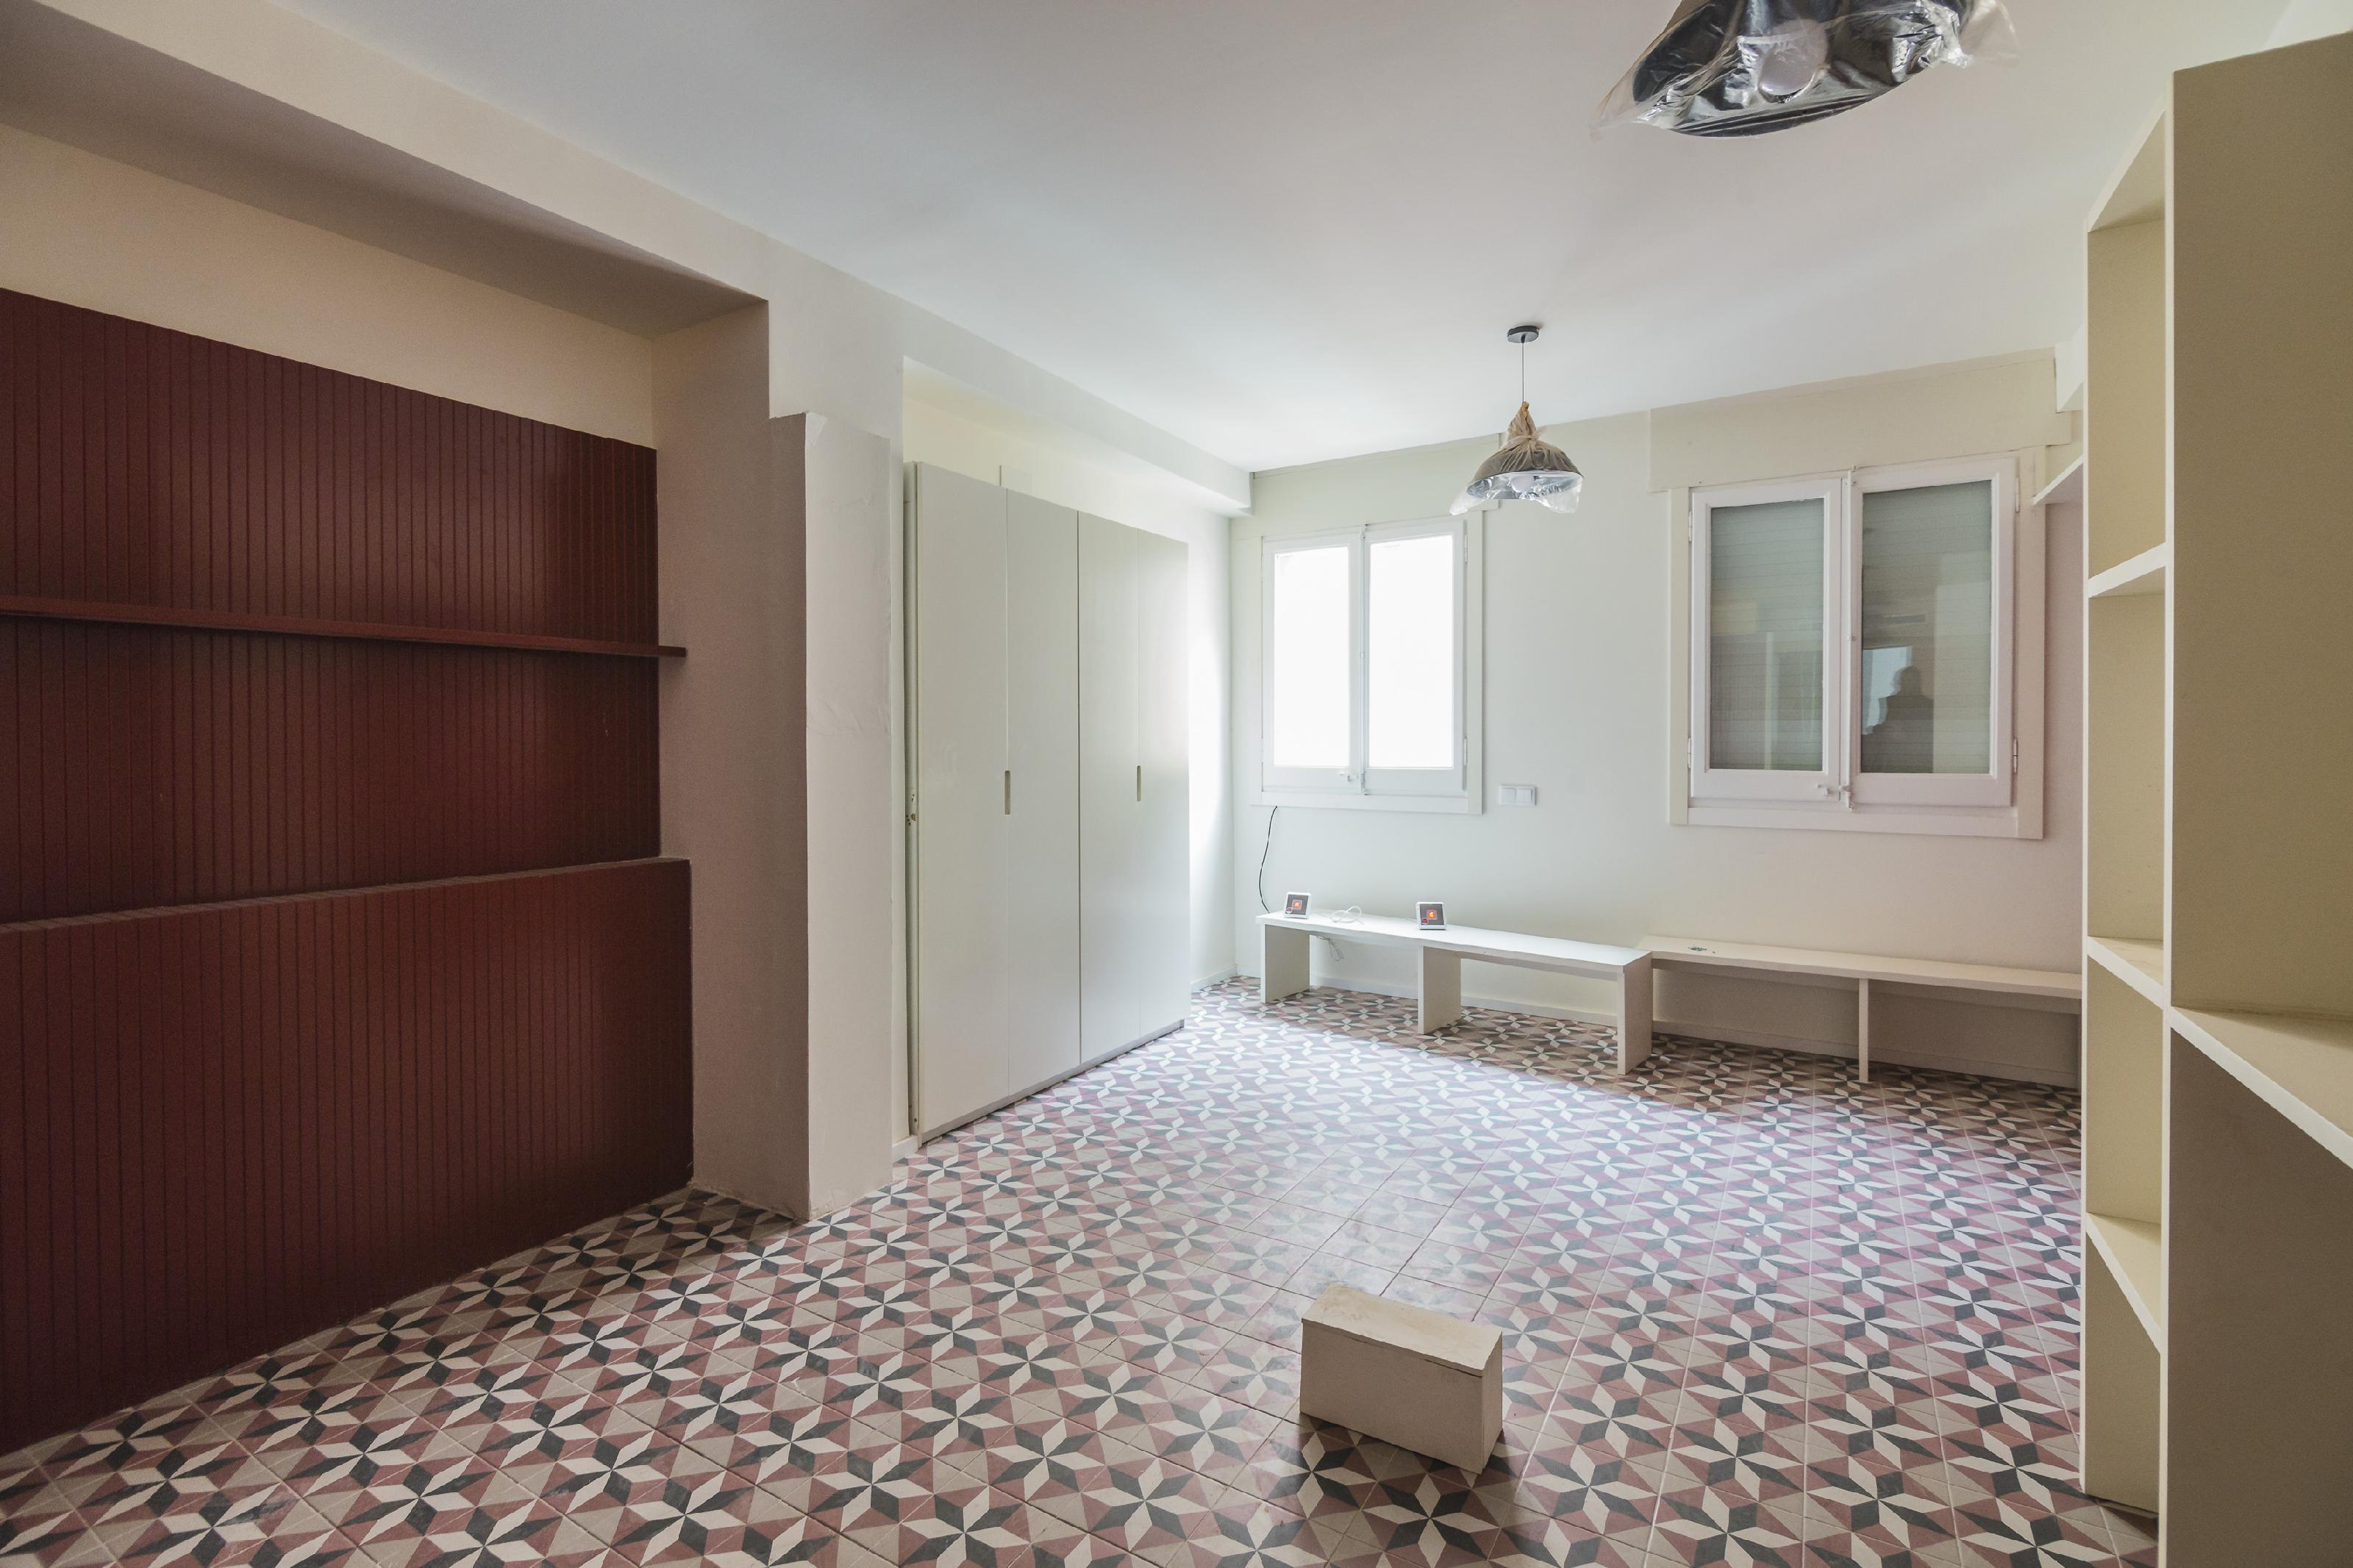 237520 Flat for sale in Ciutat Vella, St. Pere St. Caterina and La Ribera 18